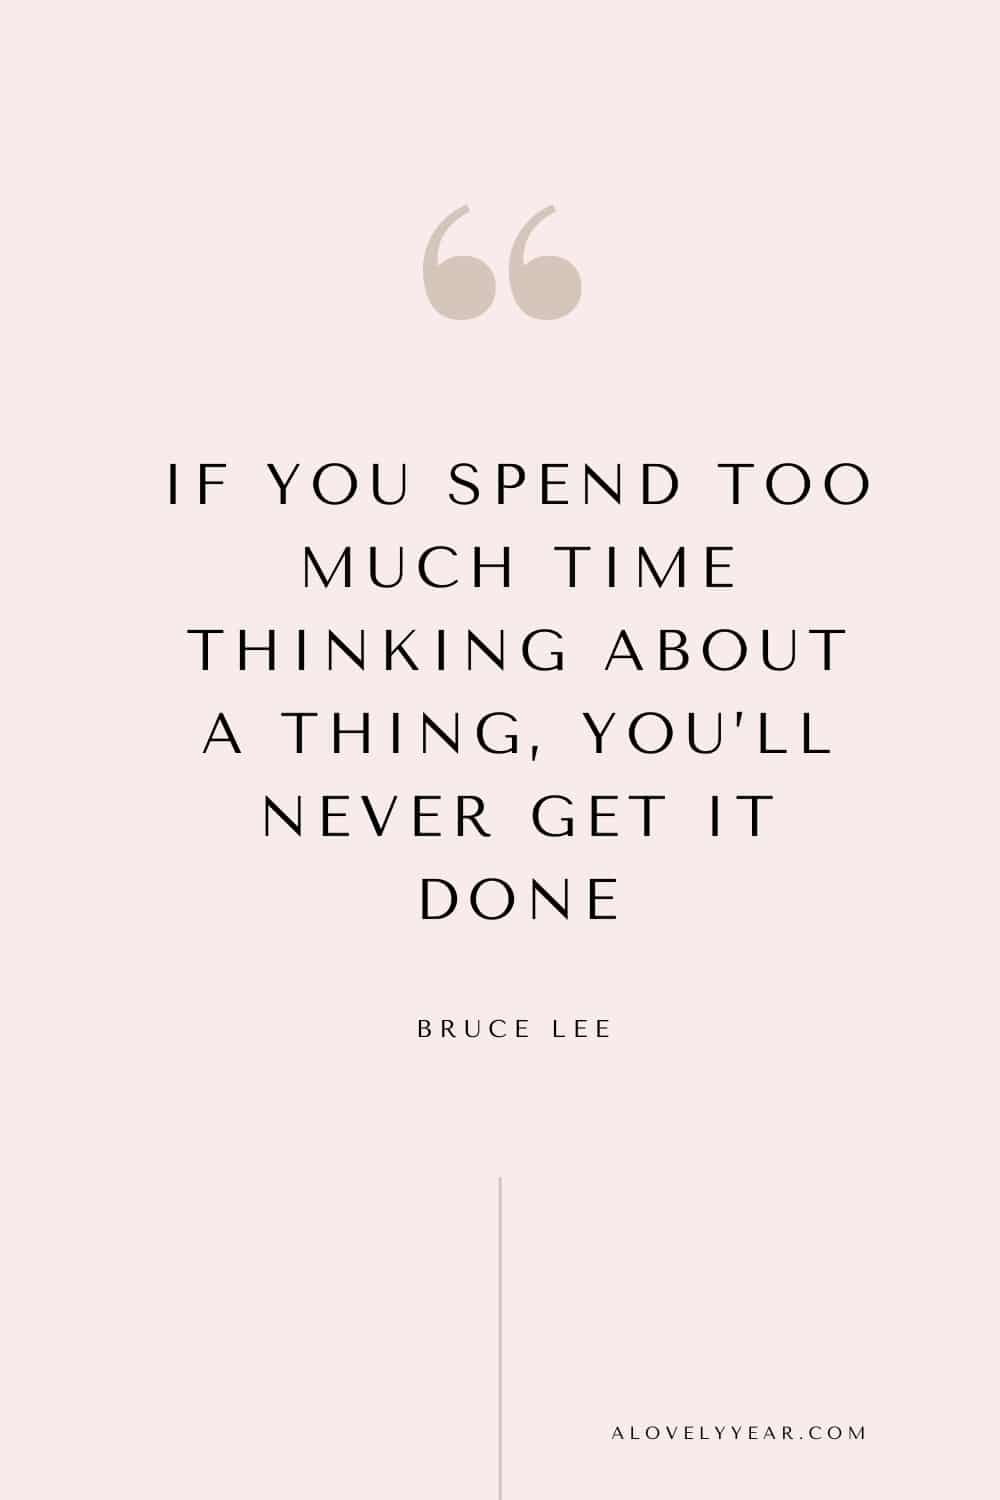 quote - If you spend too much time thinking about a thing, you'll never get it done. — Bruce Lee